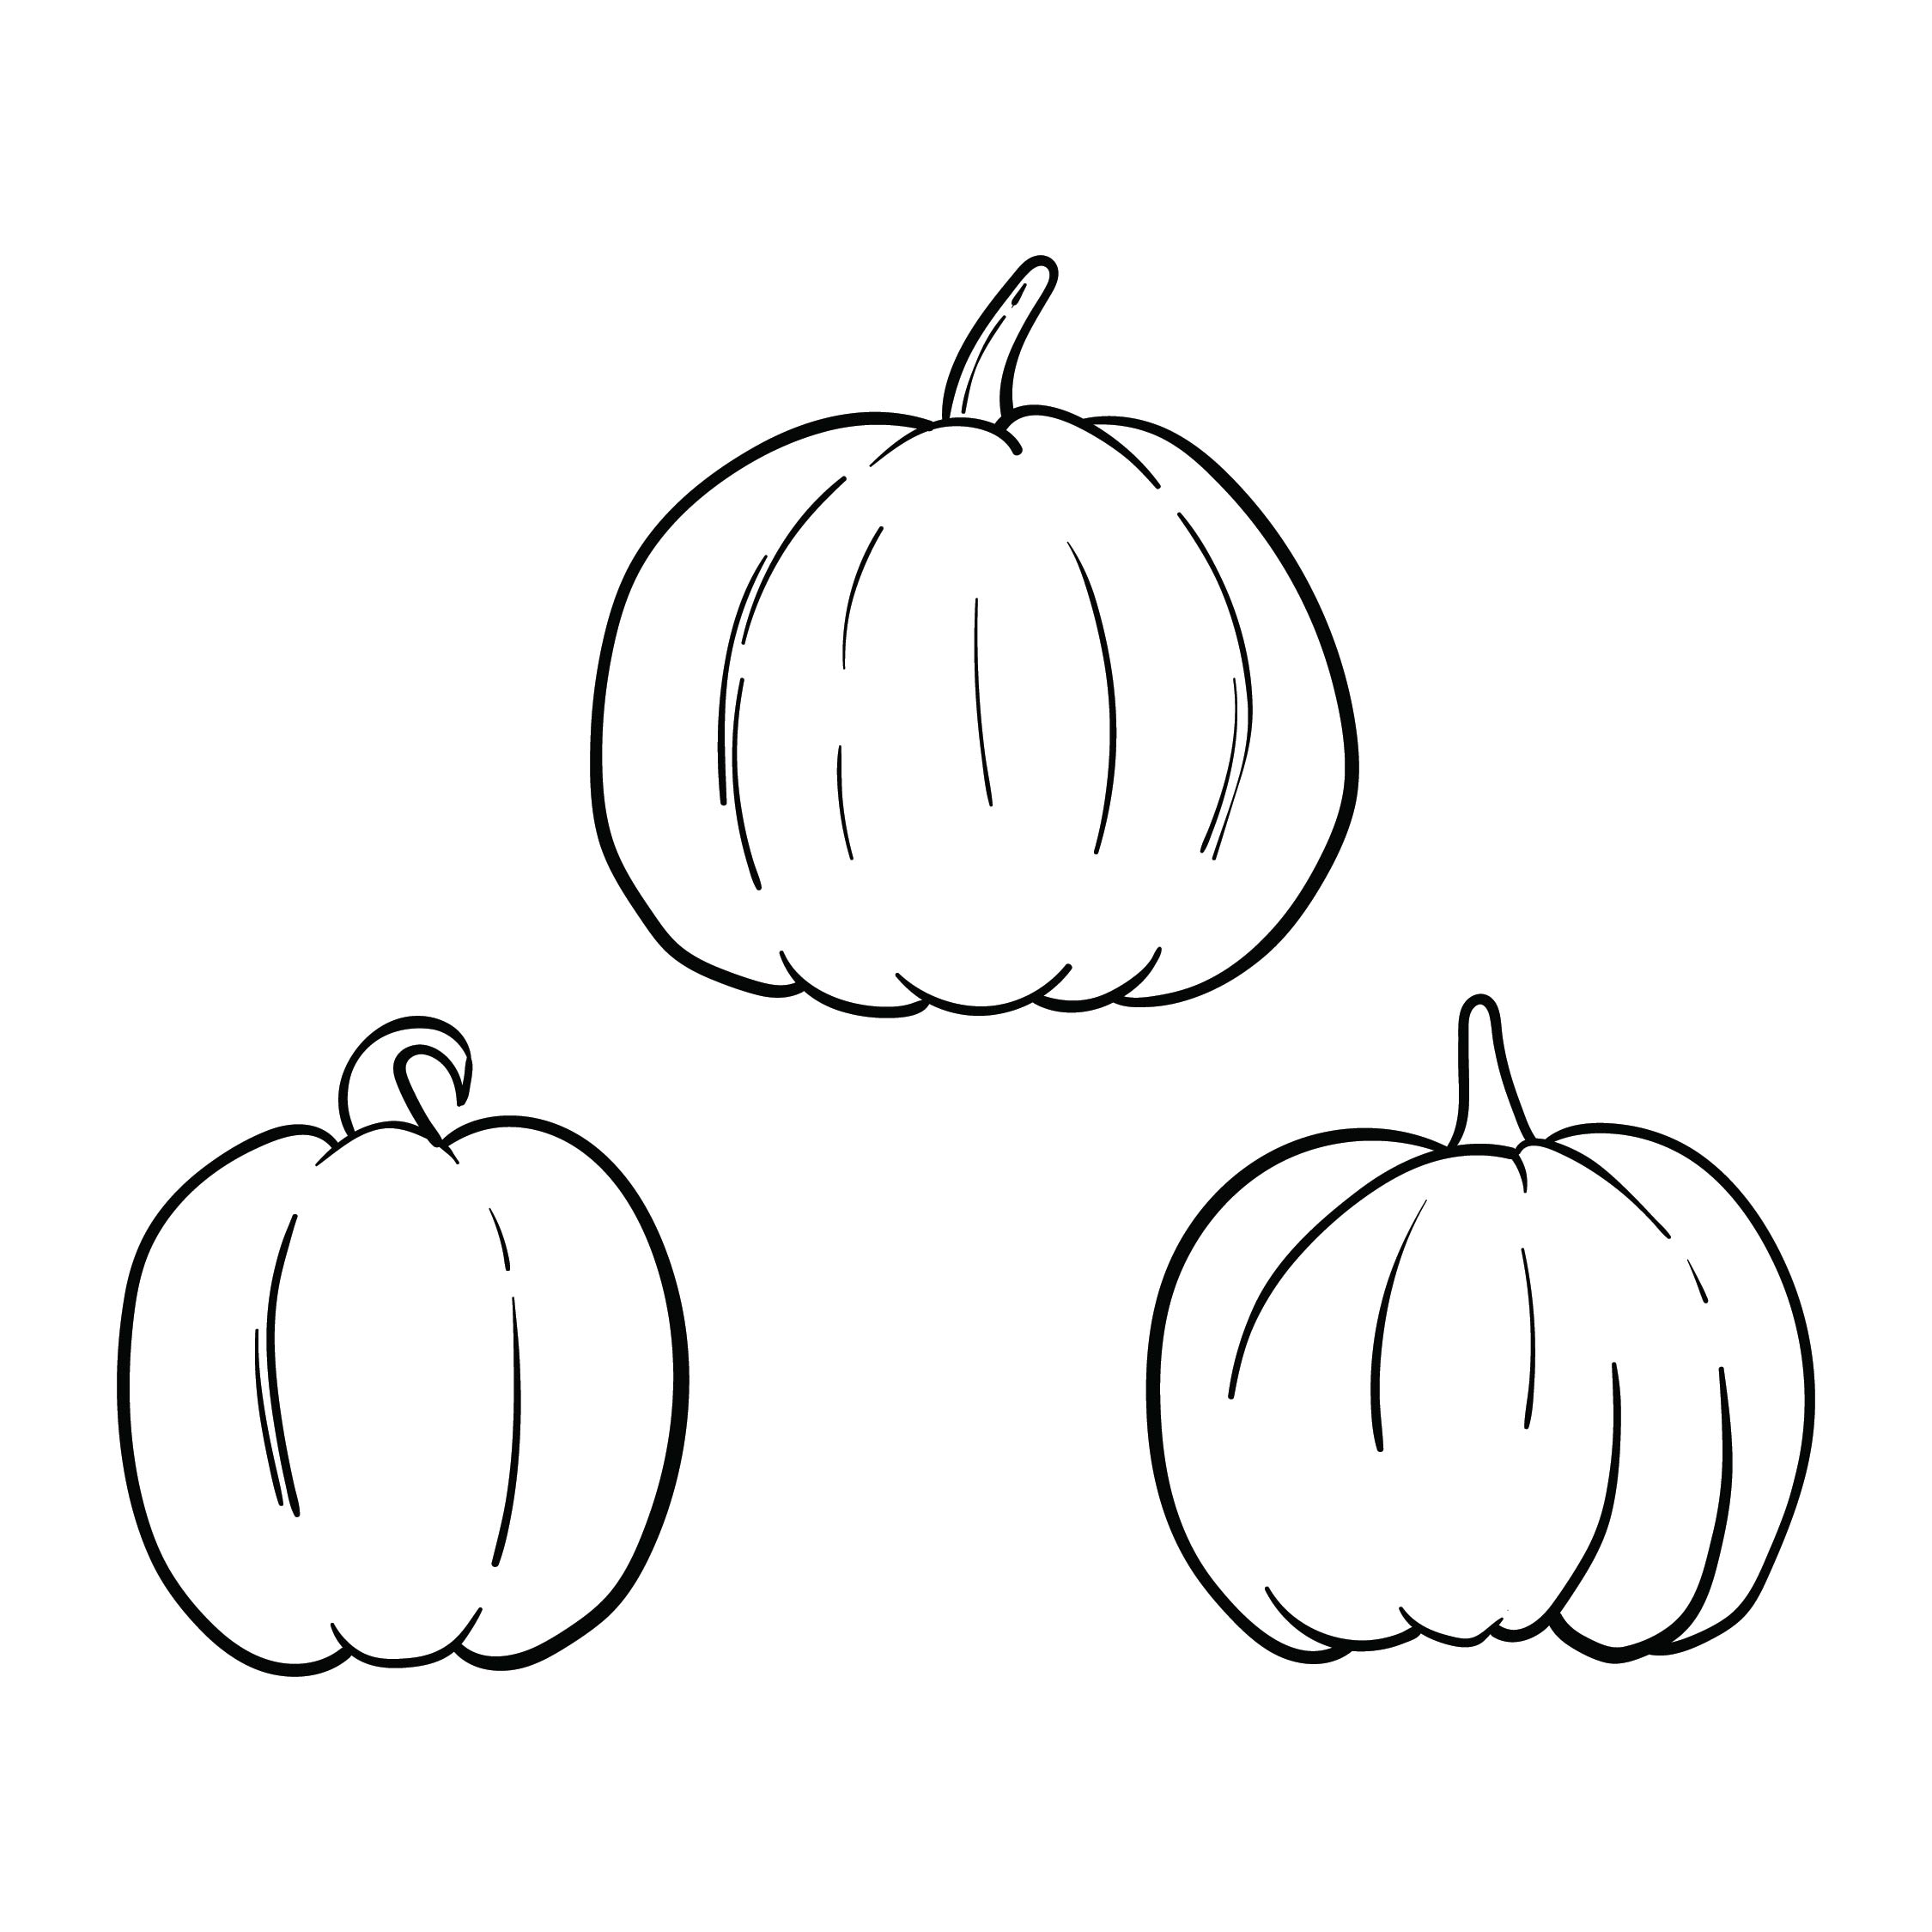 Small Halloween Pumpkin Templates